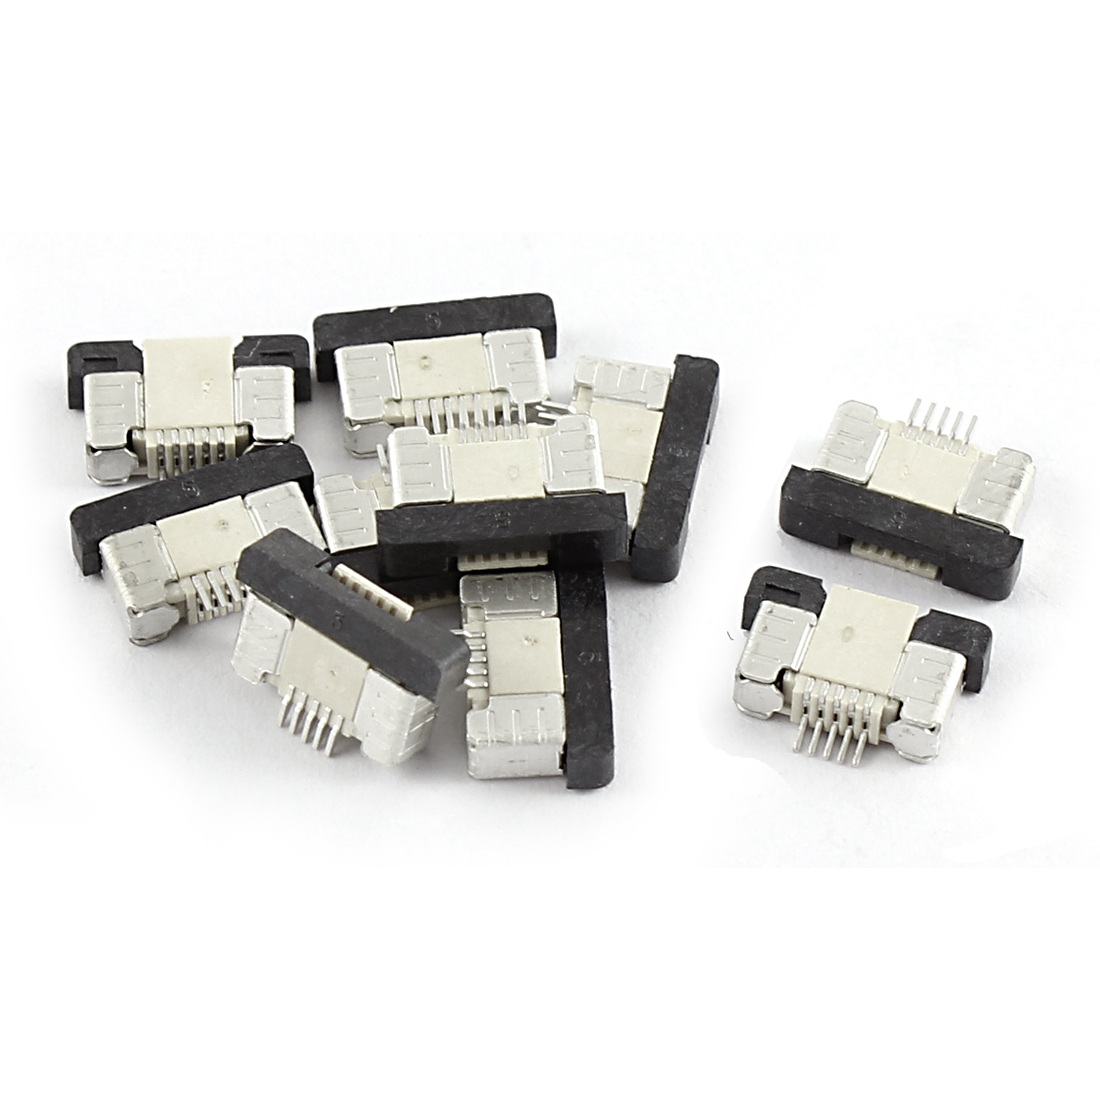 10Pcs Bottom Port 5Pin 0.5mm Pitch FFC FPC Ribbon Sockets Connector